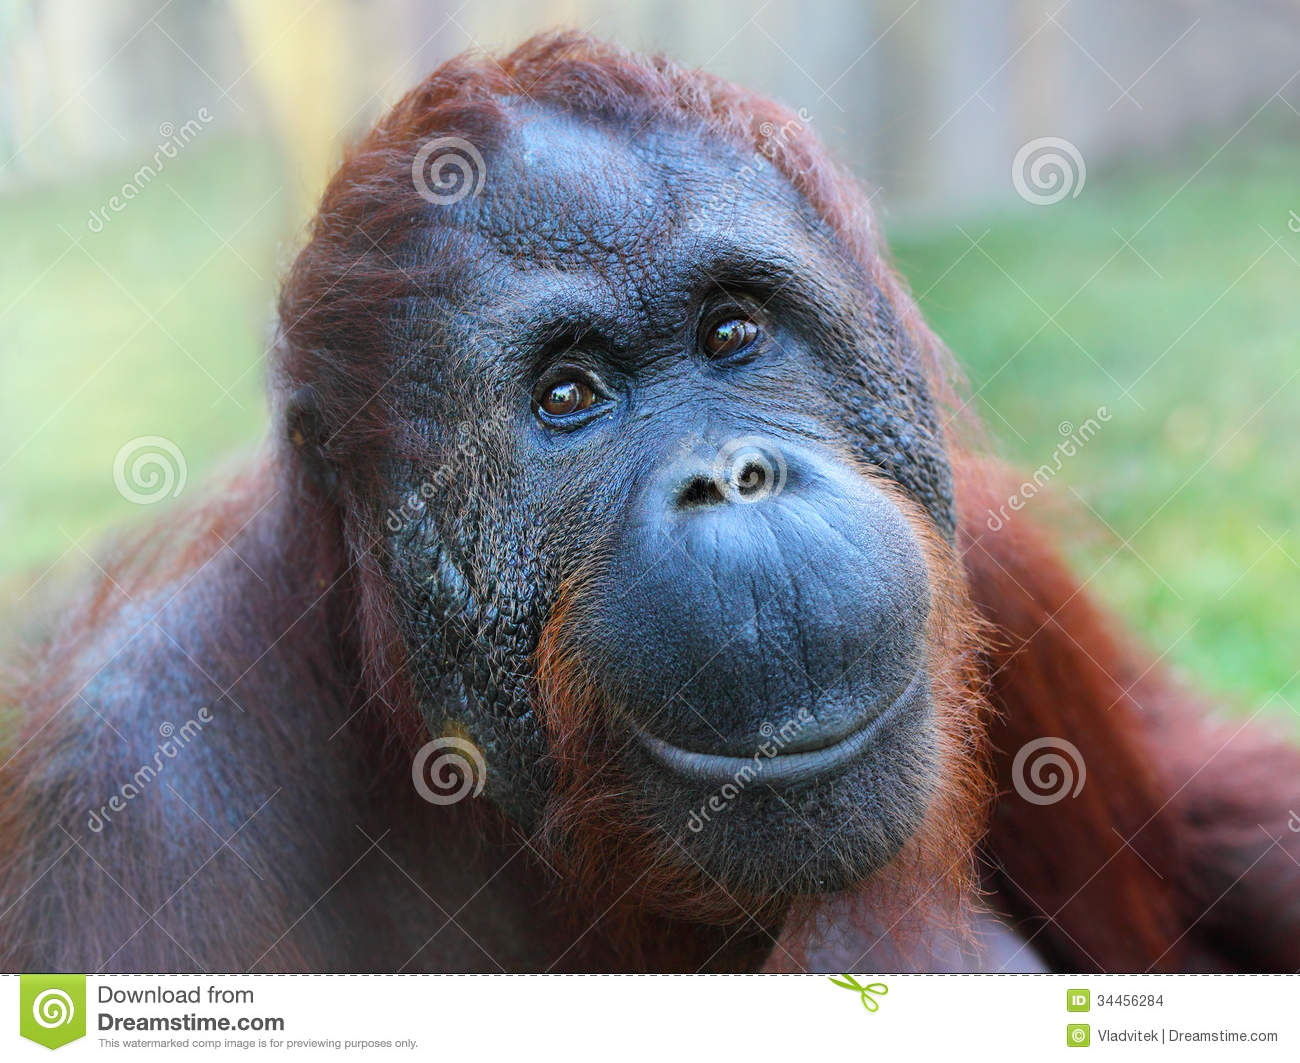 Orangutan Smiling The bornean orangutan  pongoOrangutan Smiling Teeth